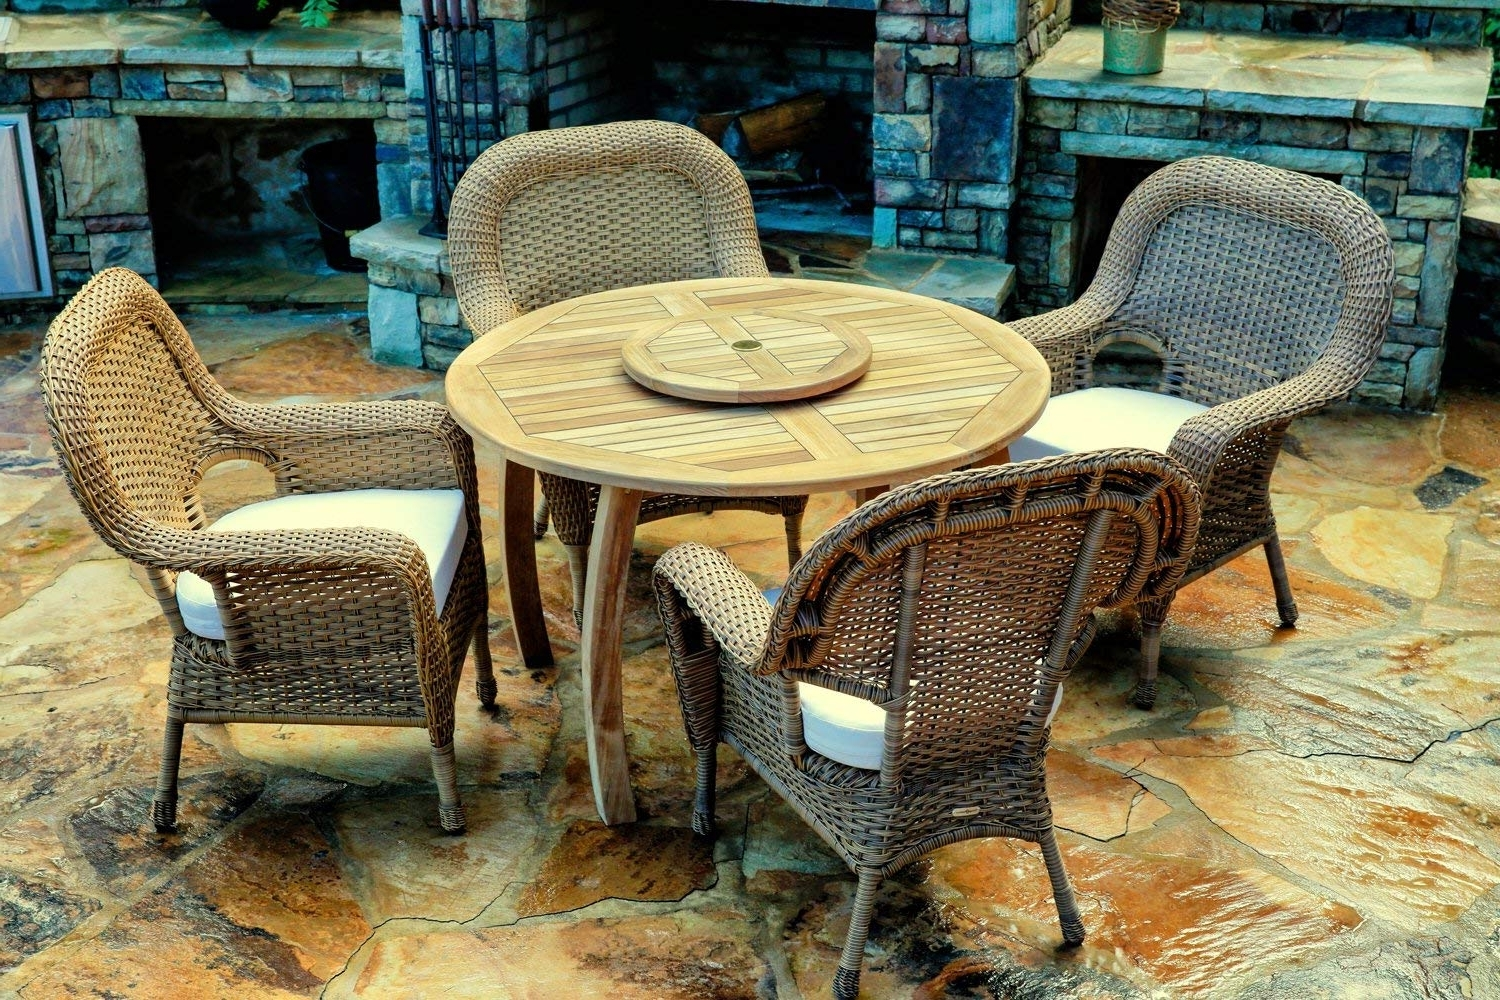 Preferred Outdoor Tortuga Dining Tables For Amazon: Tortuga Outdoor The Sea Pines 5 Piece Dining Set (View 16 of 25)